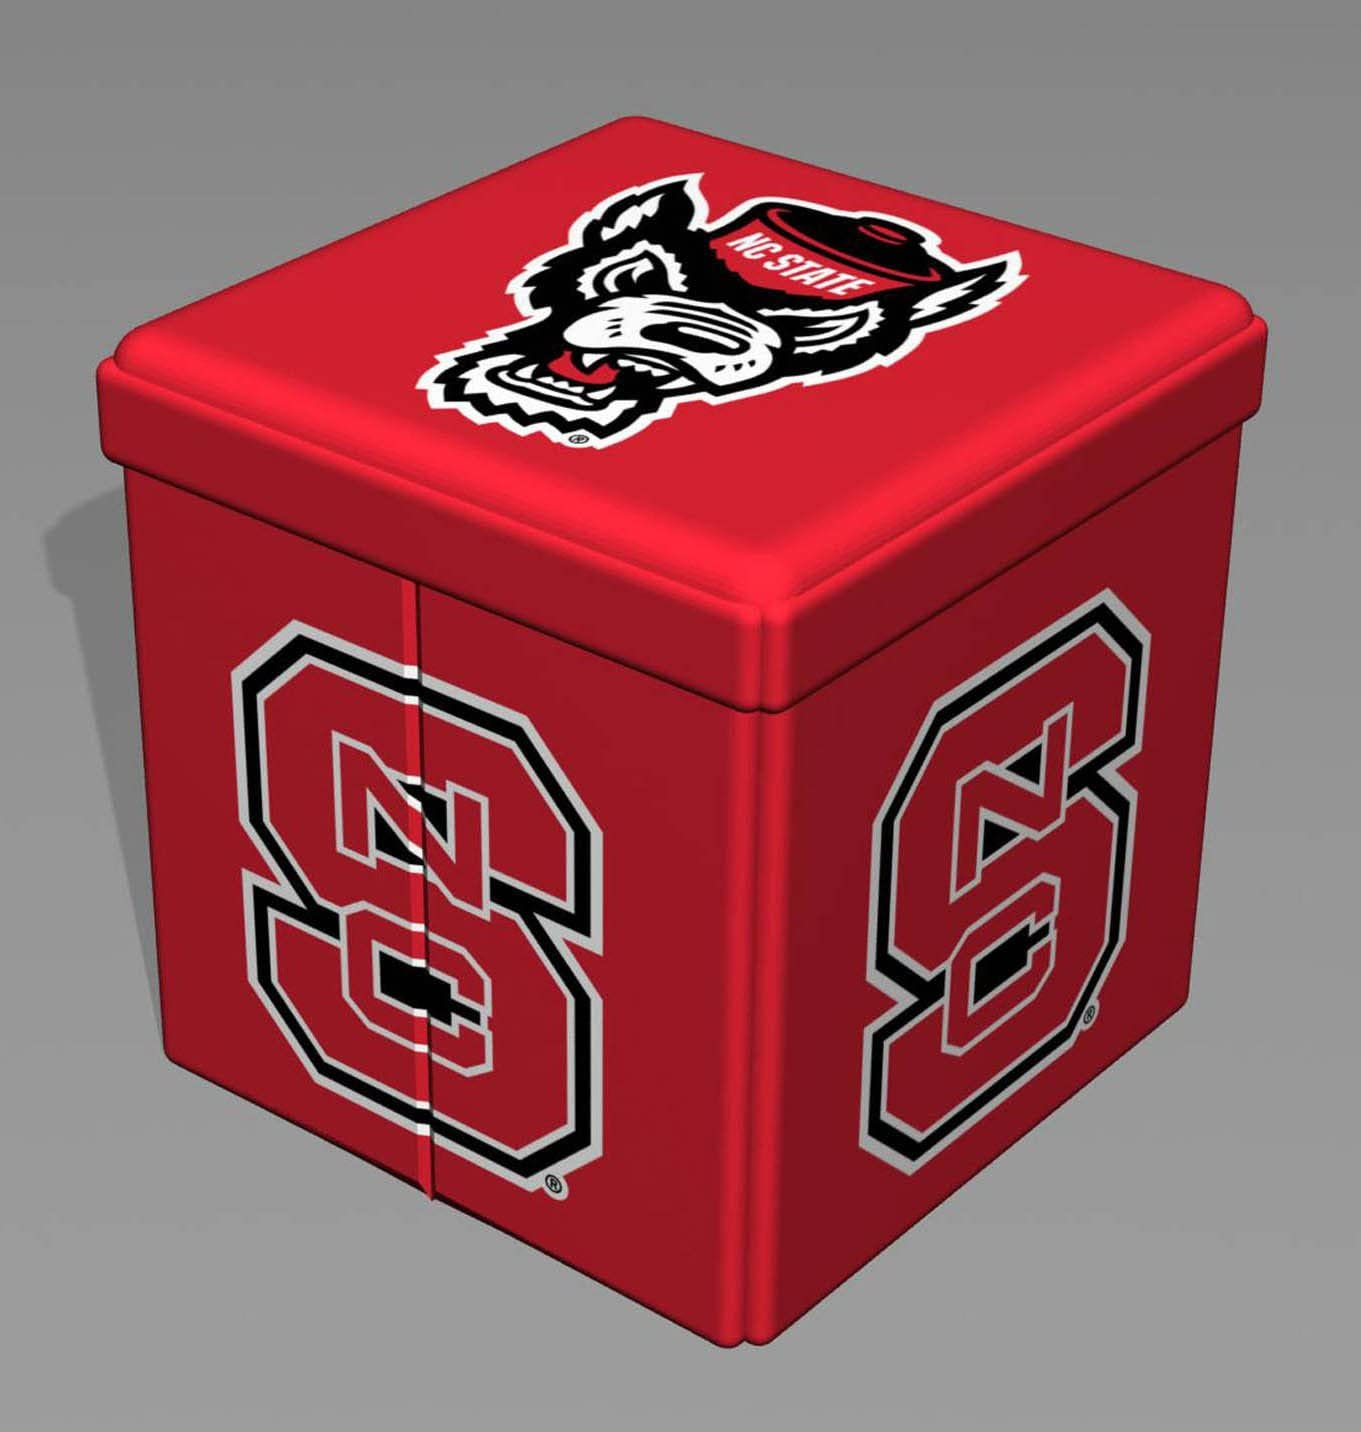 NC State Small Storage Ottoman – Fully Collapsible